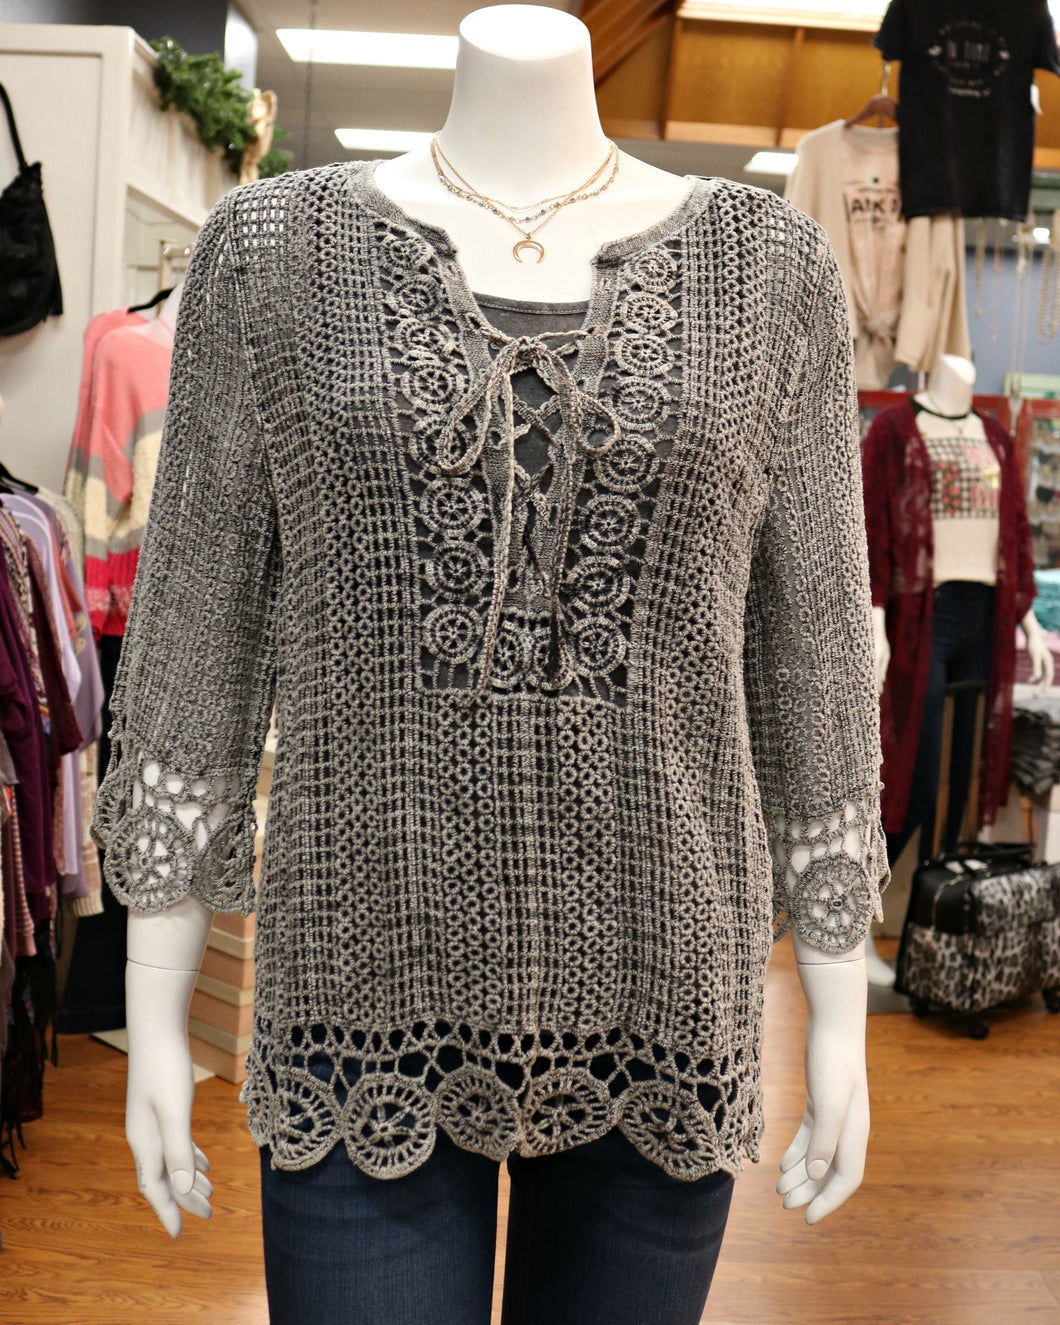 Crocheted Woven Three Qtr Slv Top w Criss Cross Tie at Neck